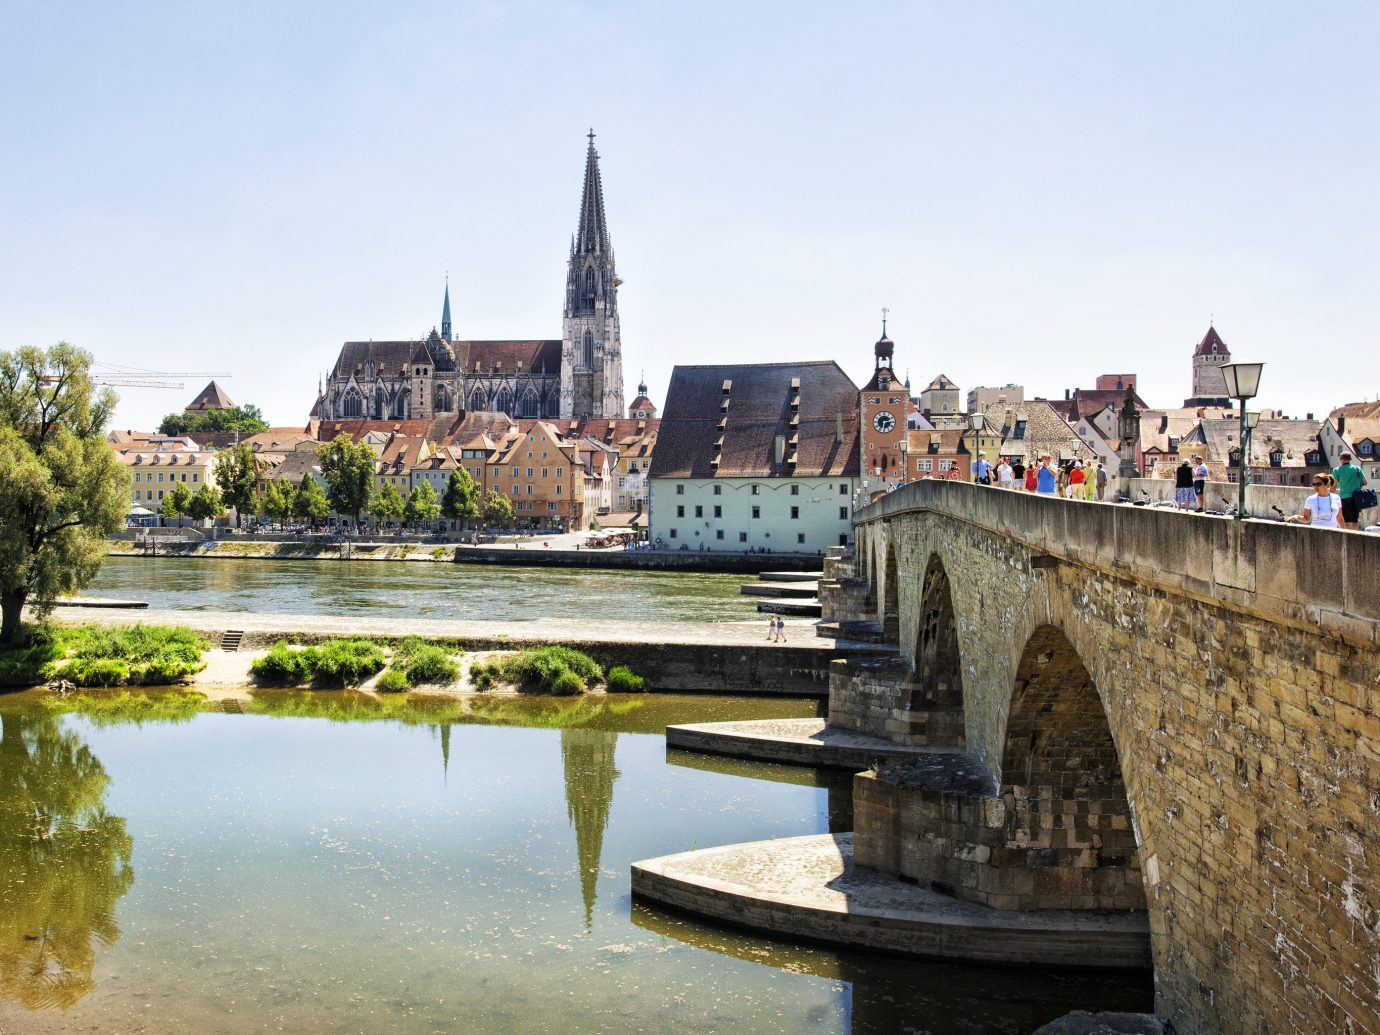 Lakes + Rivers Landmarks Travel Tips sky outdoor water bridge River landmark Town City tourism reflection vacation waterway château cityscape Canal tours travel park stone traveling castle passing